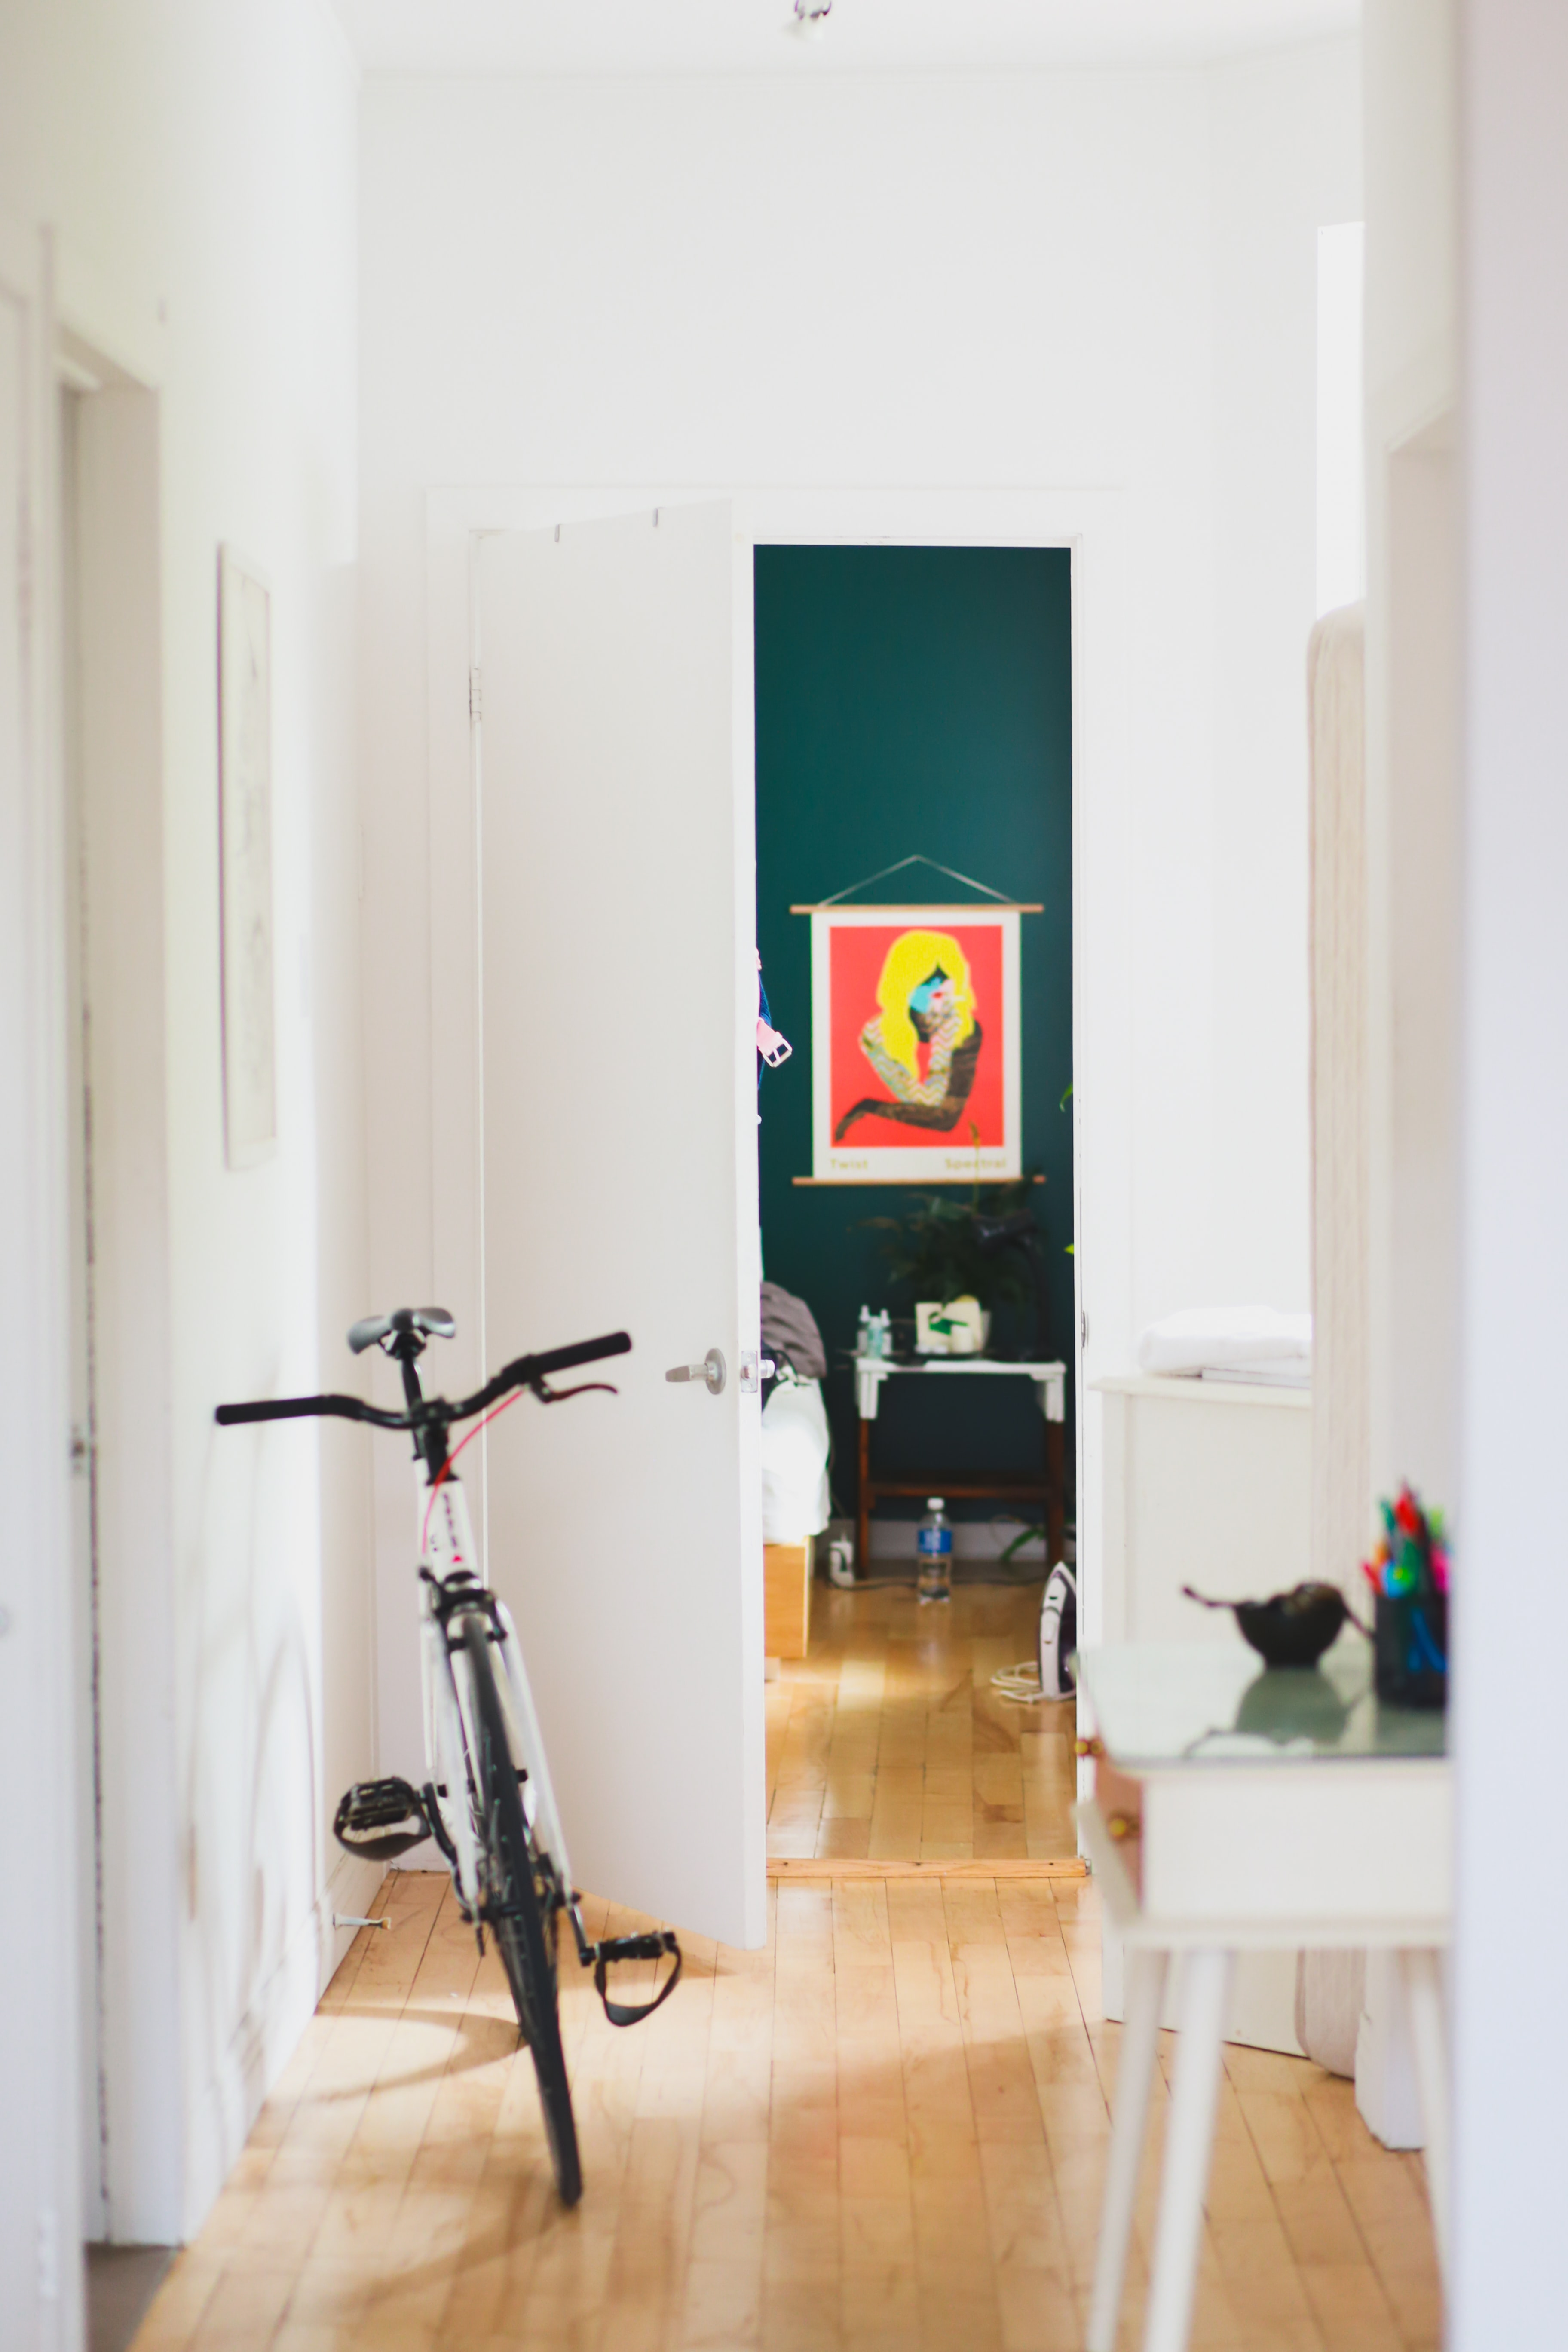 white bike parked in house